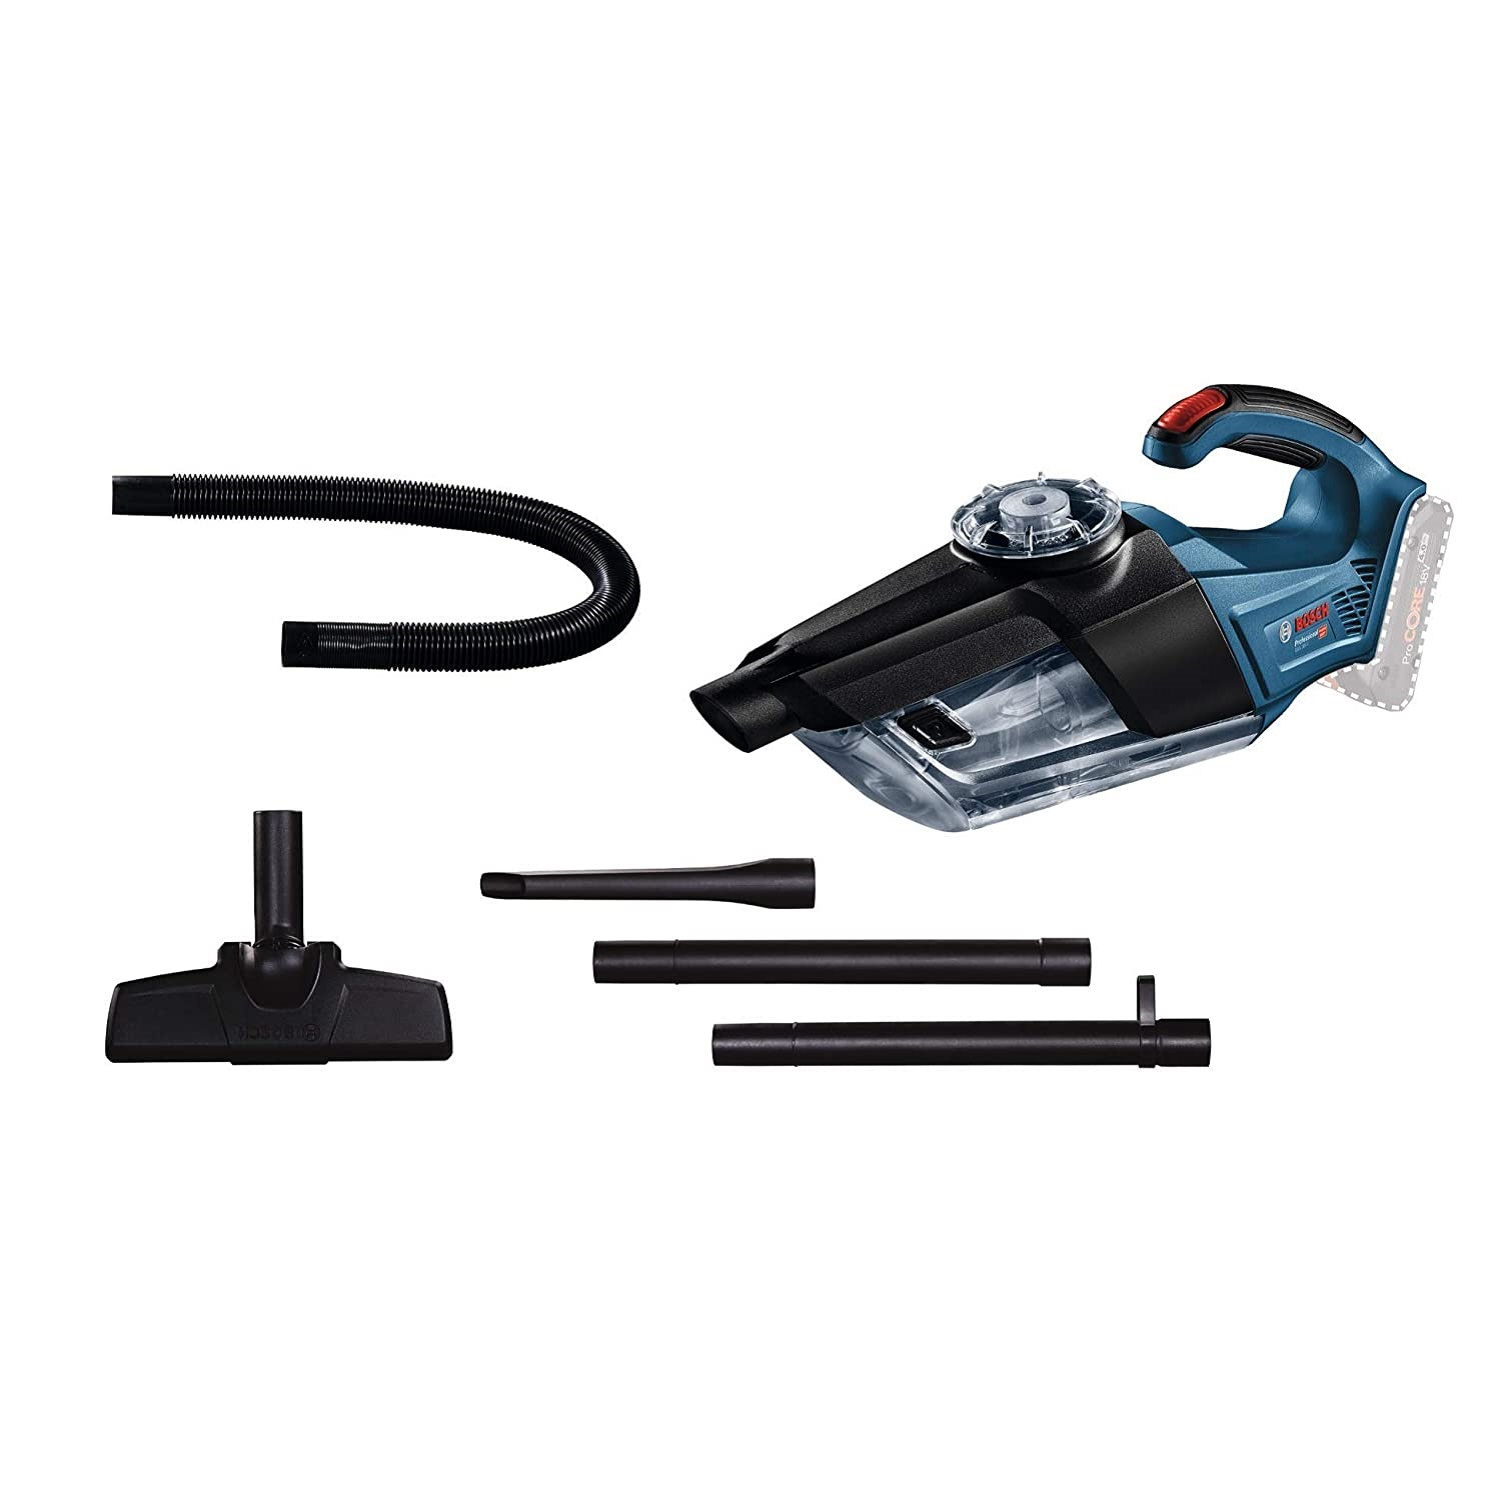 Bosch Professional 06019C6200 Gas 18 V1 Dust Extraction Vacuum